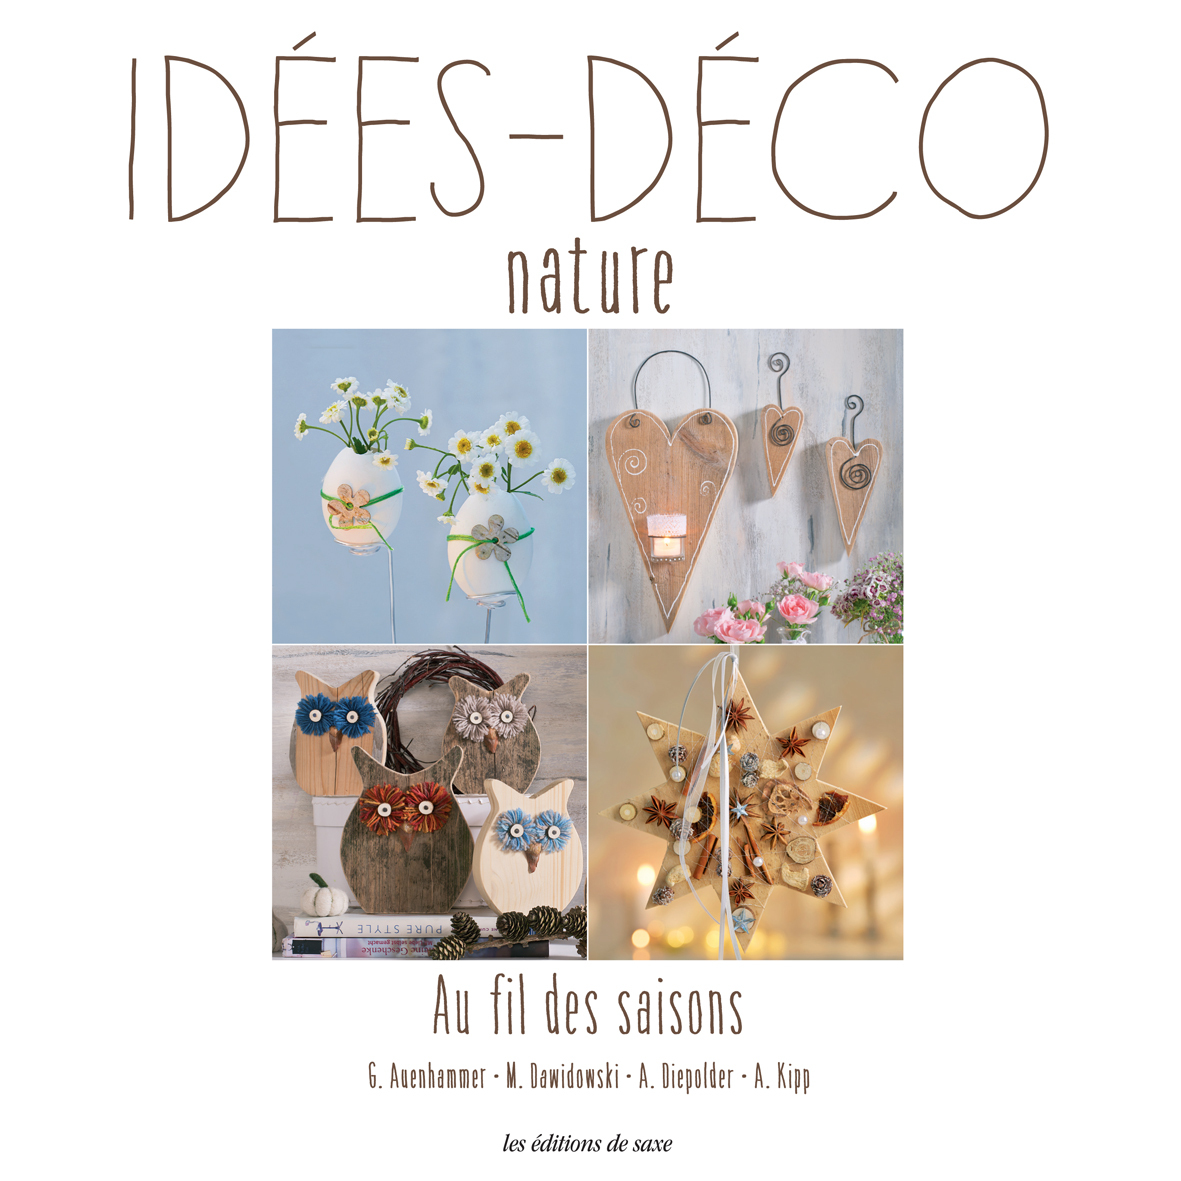 IDEES DECO NATURE